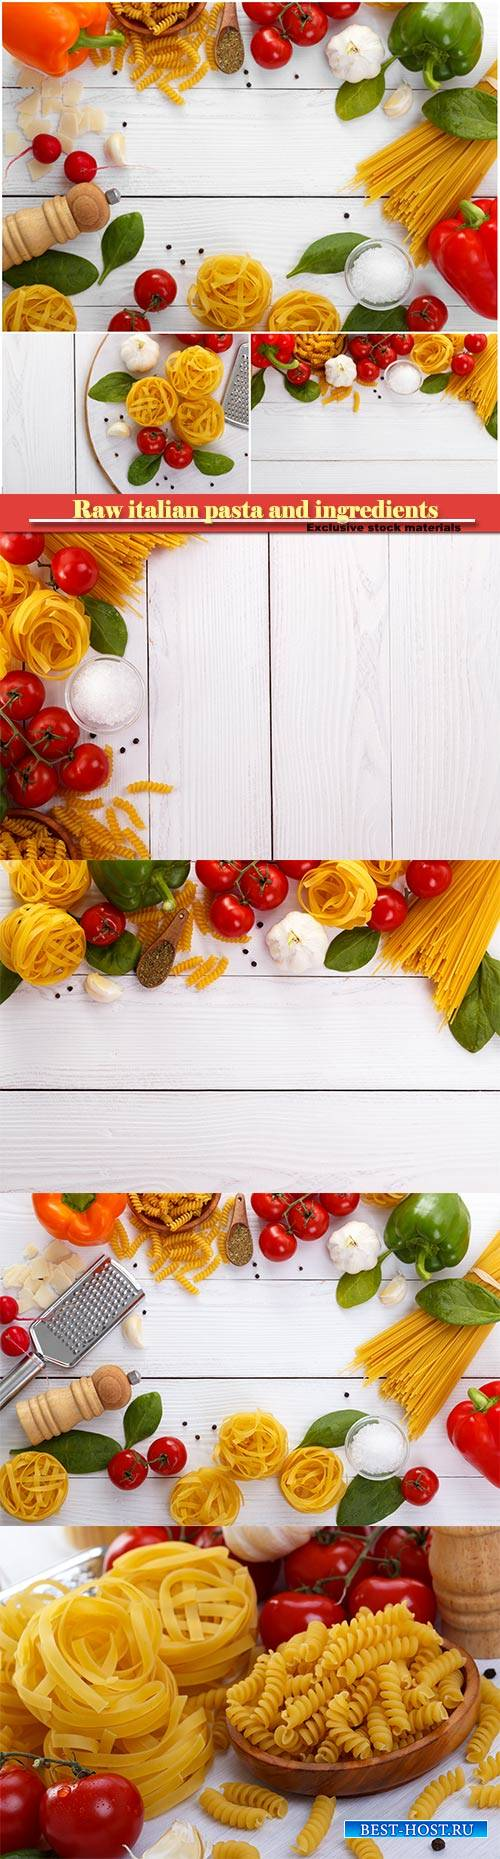 Raw italian pasta and ingredients composition on white wooden board